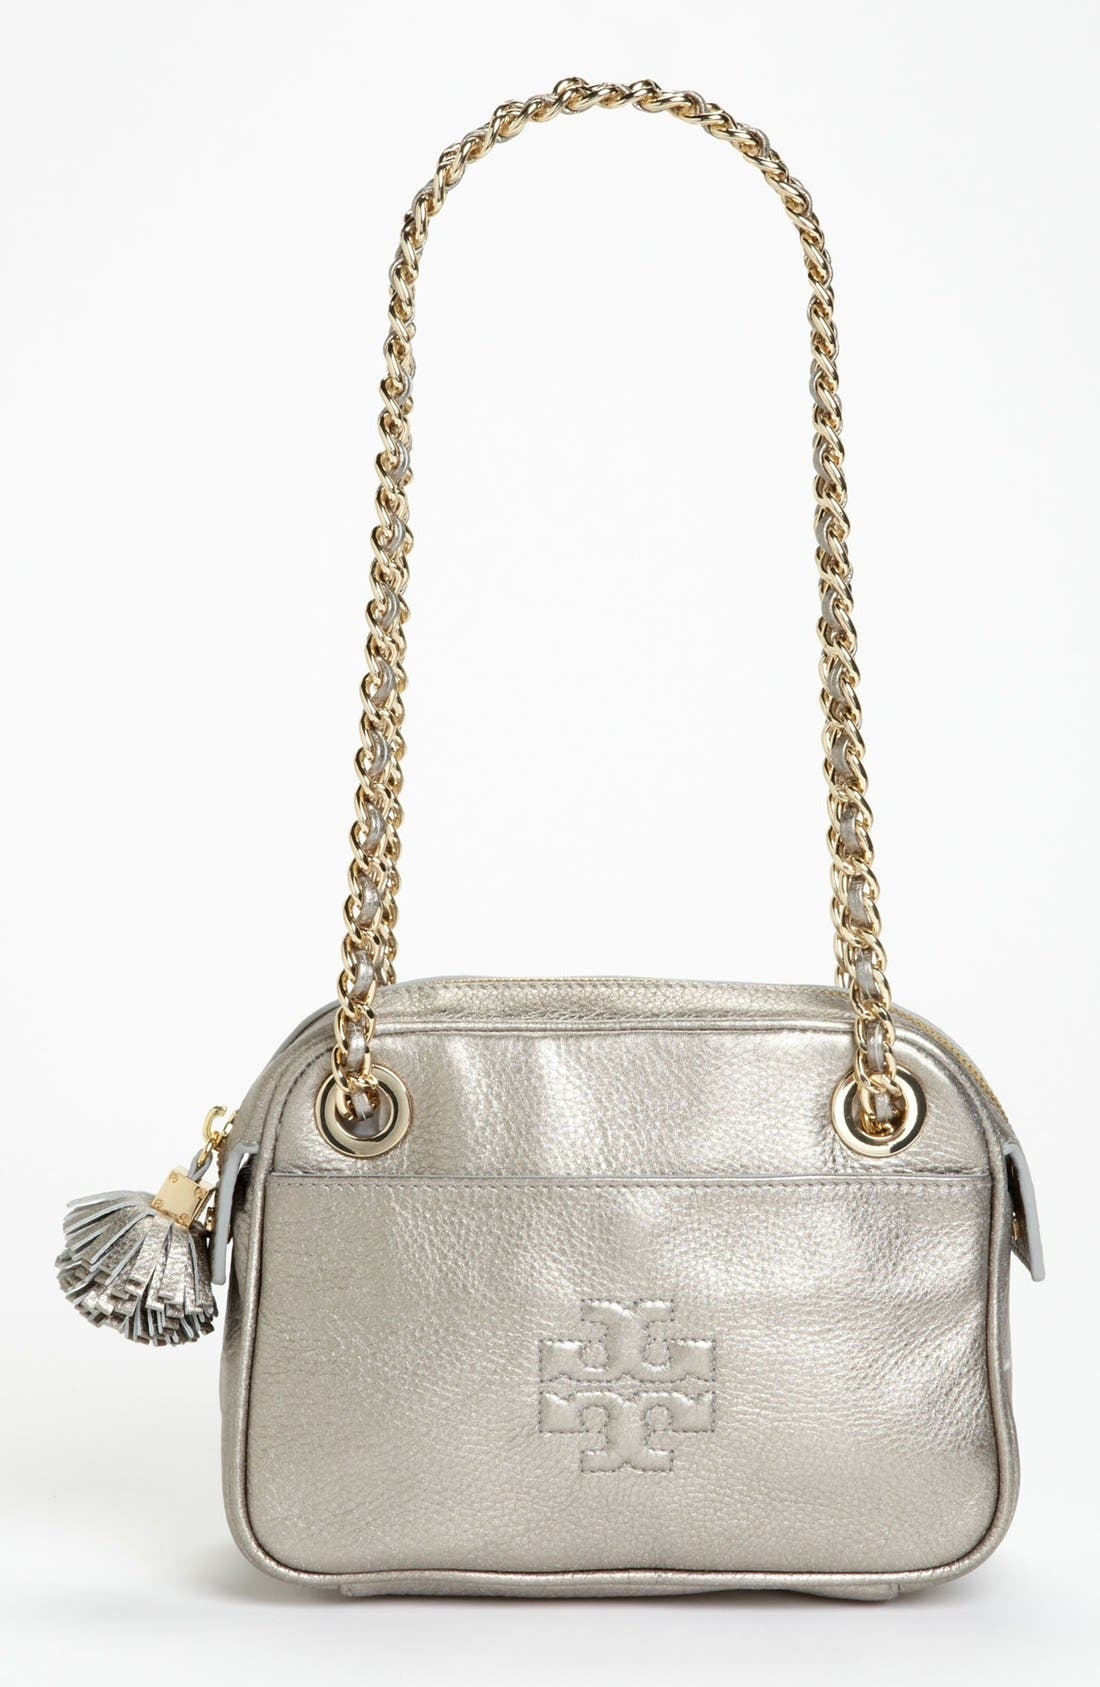 Alternate Image 1 Selected - Tory Burch 'Thea' Metallic Leather Crossbody Bag